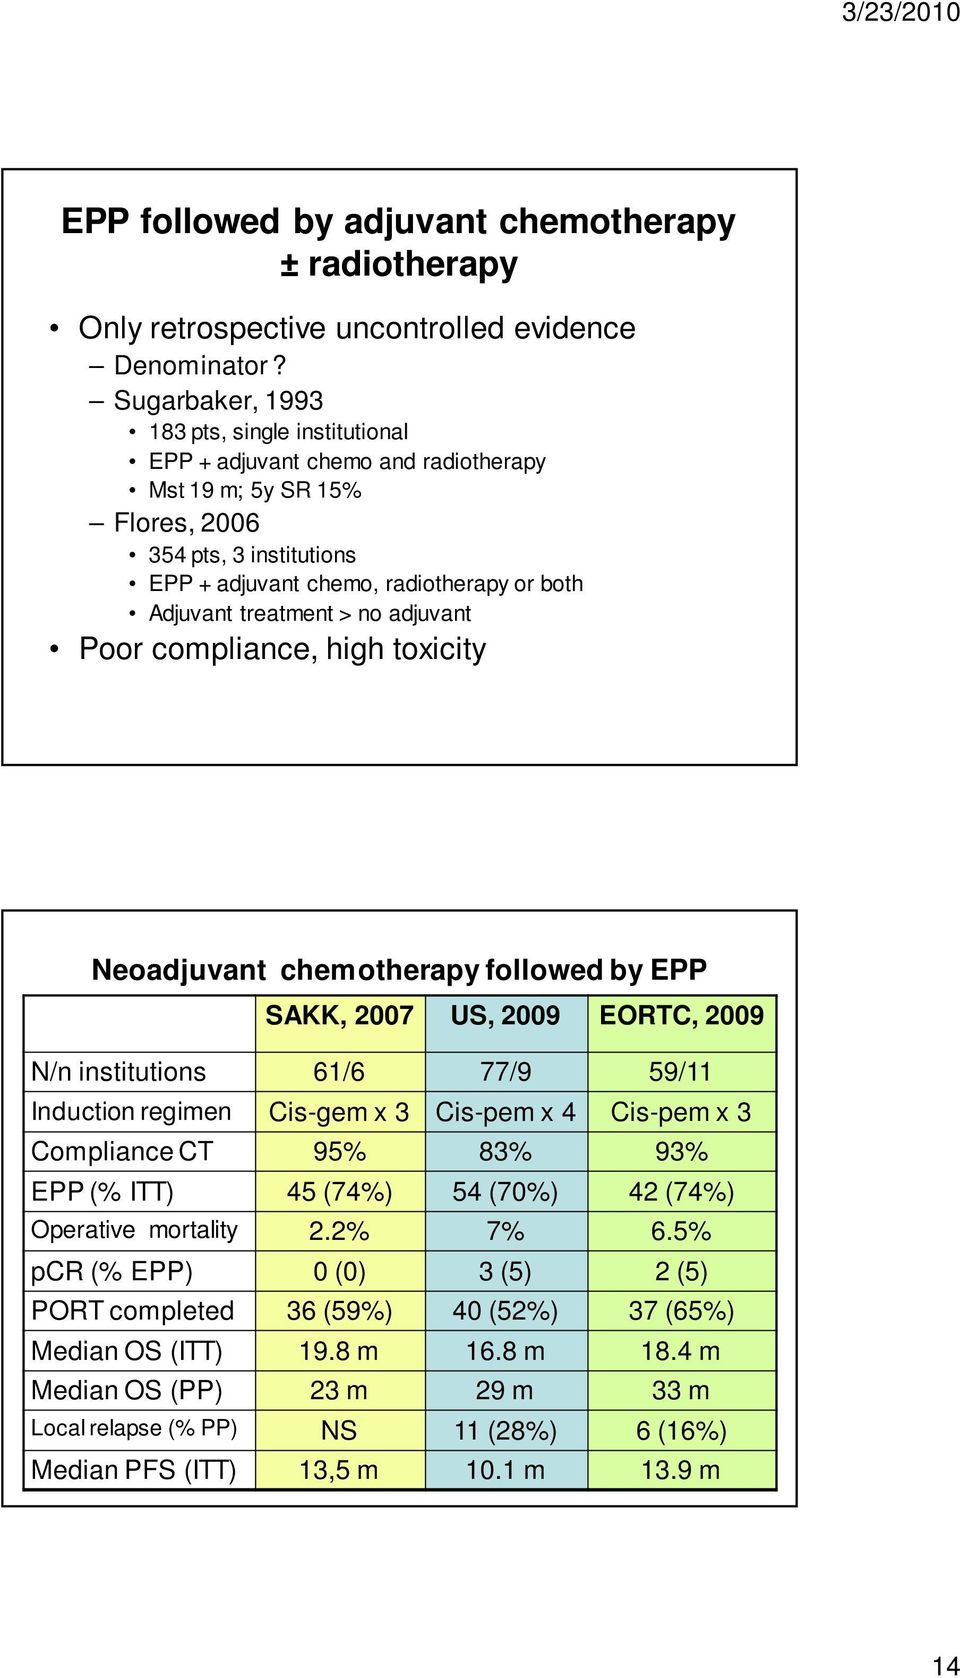 treatment > no adjuvant Poor compliance, high toxicity Neoadjuvant chemotherapy followed by EPP SAKK, 2007 US, 2009 EORTC, 2009 N/n institutions 61/6 77/9 59/11 Induction regimen Cis-gem x 3 Cis-pem